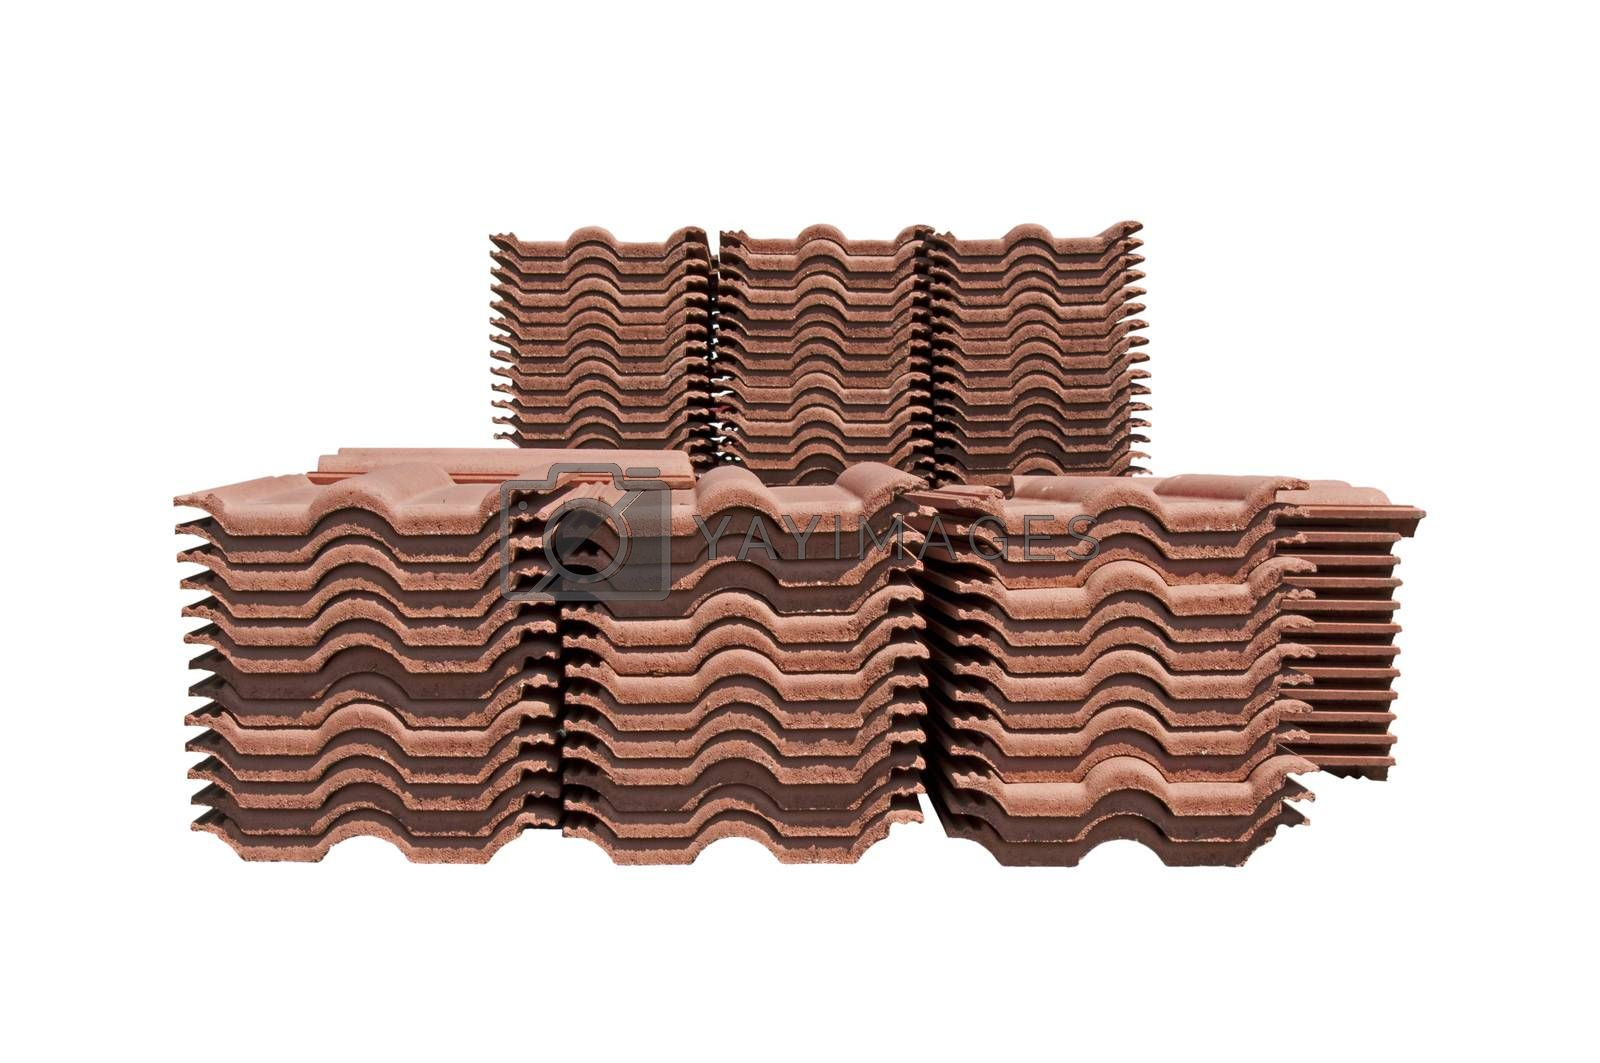 Pile of roofing tiles packaged. Isolated on white